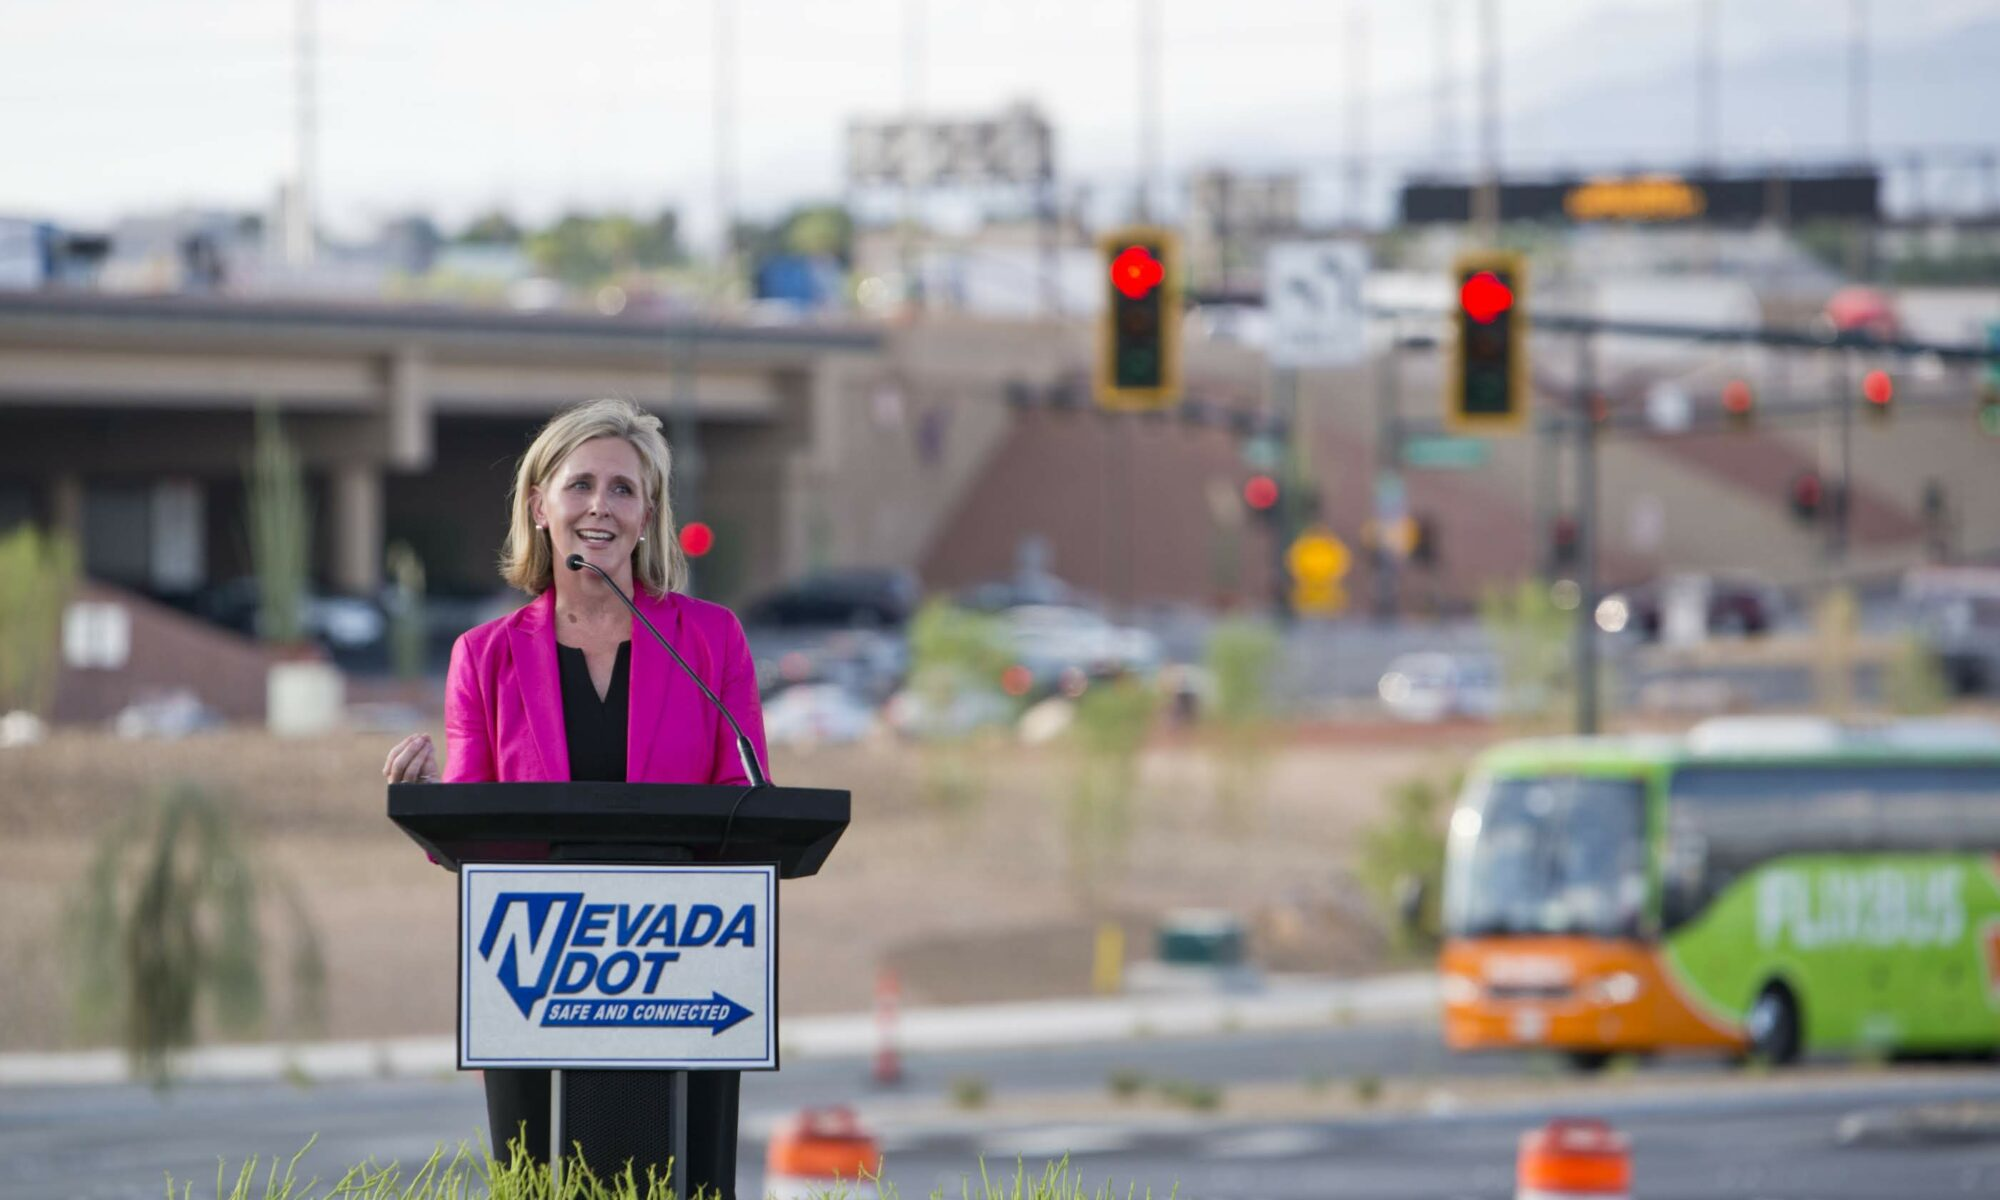 NDOT Director Kristina Swallow speaks during the Project Neon Grand Finale event in downtown Las Vegas on Thursday, Aug. 8, 2019.